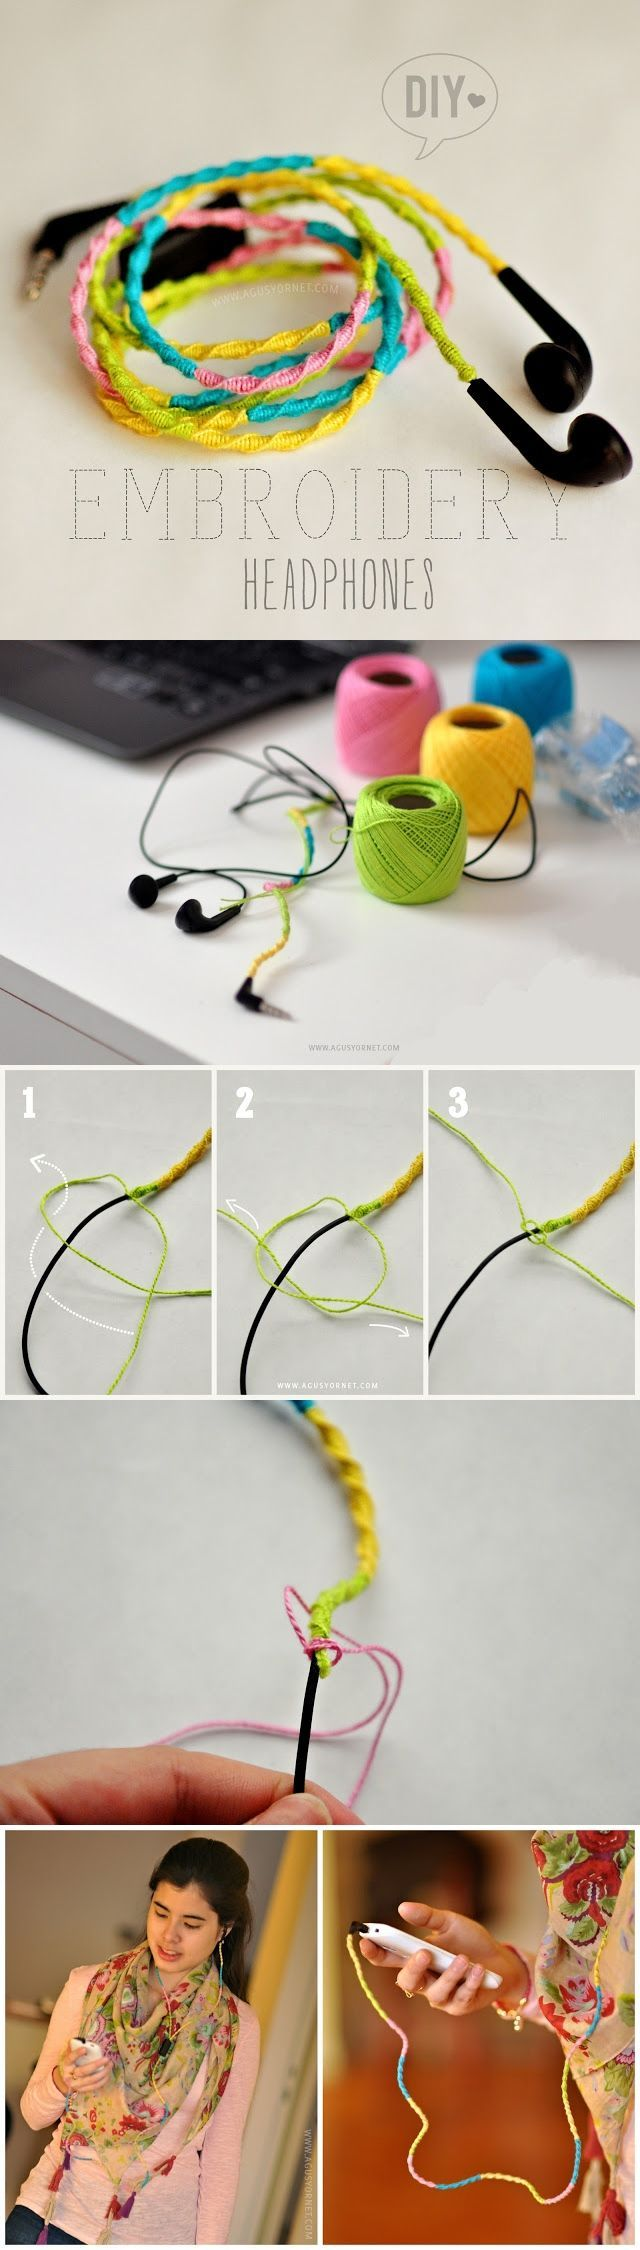 I like these headphones cause they are very cool. I think I will do the same with mine because it's a good idea! http://www.jexshop.com/